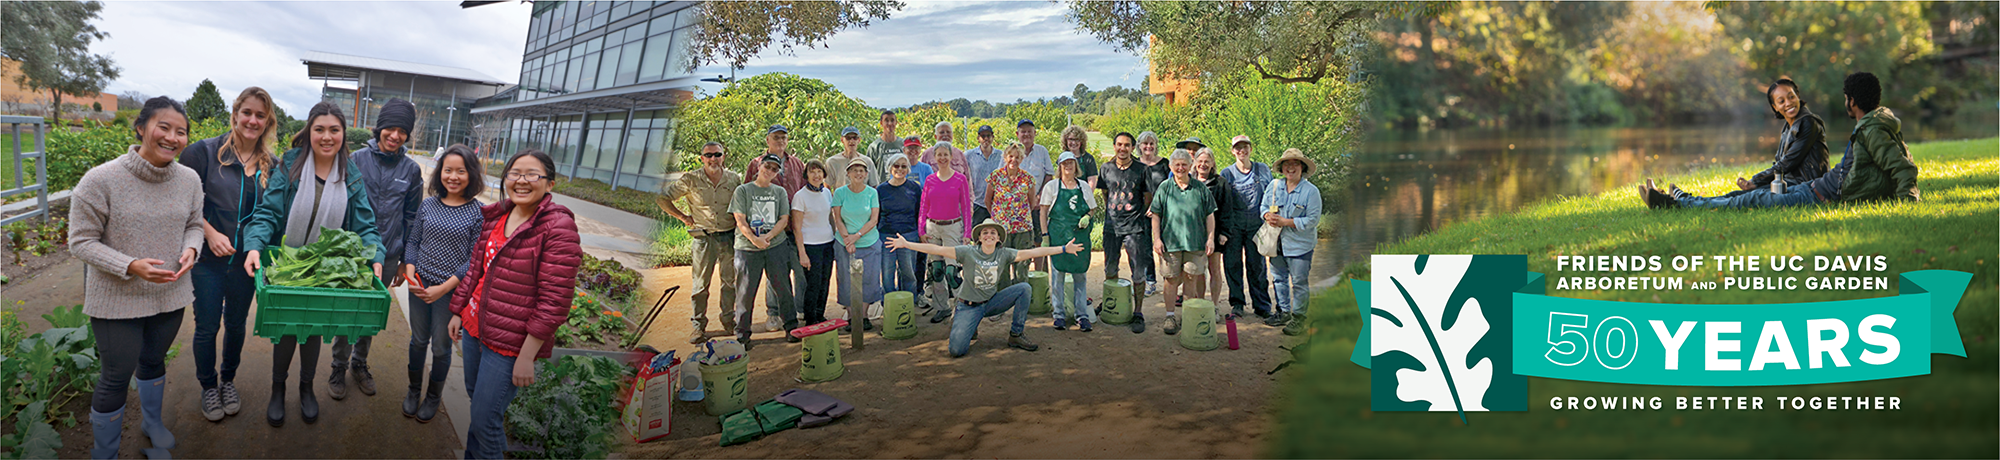 "Images of visitors, students and volunteers at the Arboretum with the Friends 50th Anniversary logo and caption ""growing better together"""